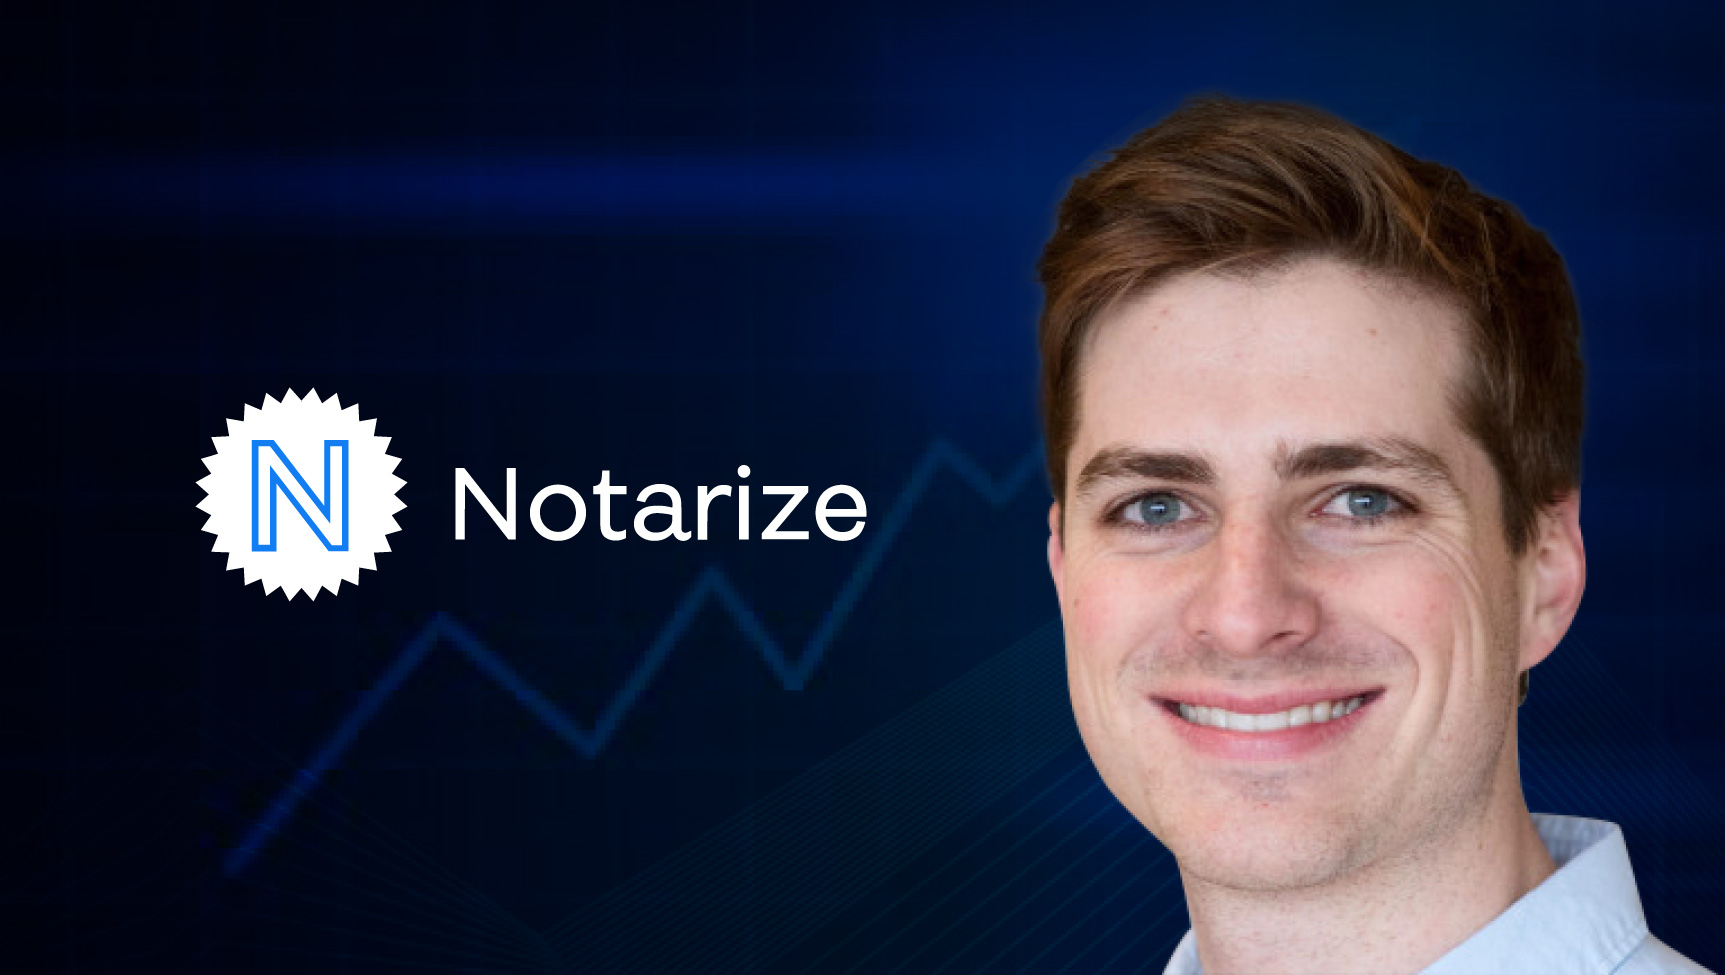 SalesTech Interview With Ryan MacInnis, Director of Marketing at Notarize